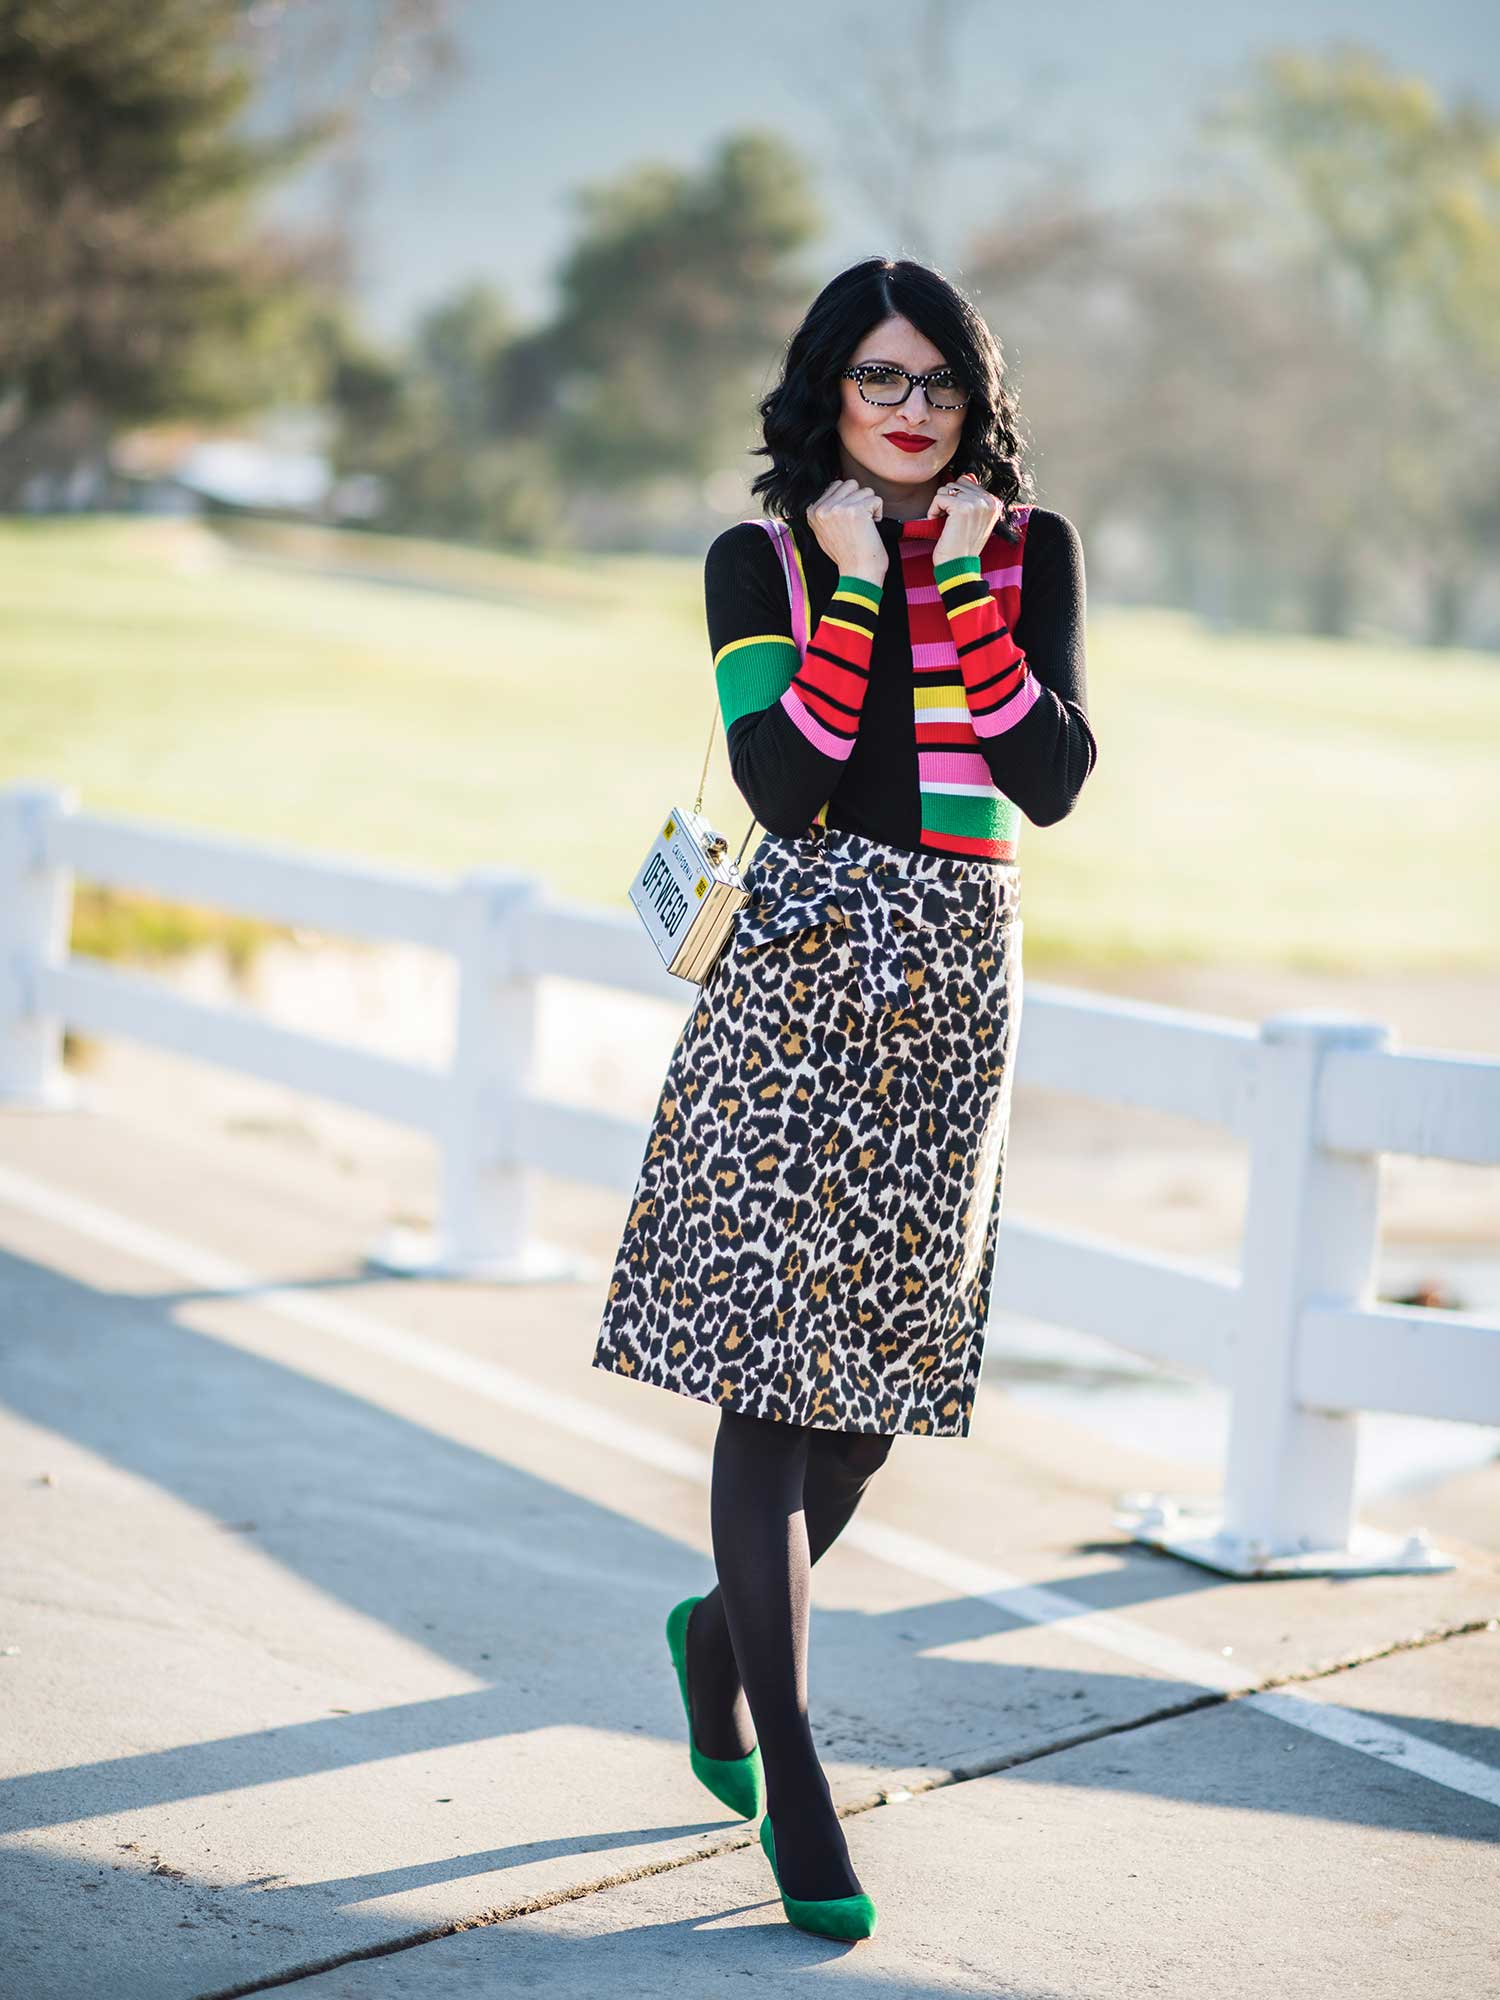 Jenna-Pilant-Style-Blogger-San-Diego-Lucky-Little-Mustardseed-How-To-Mix-Prints-In-Winter-1